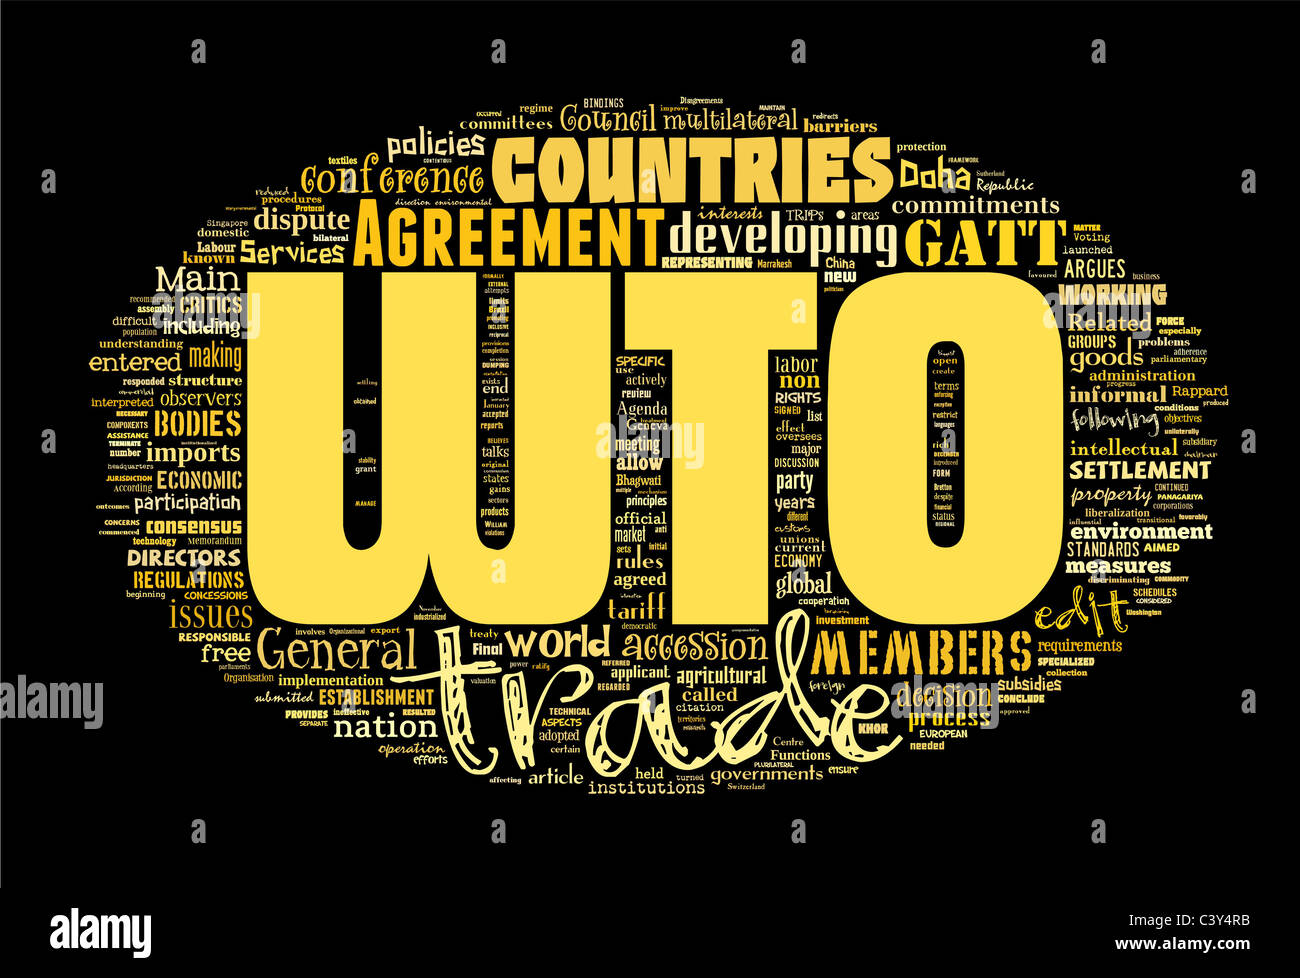 Wto World Trade Organization Isolated On Black Stock Photo